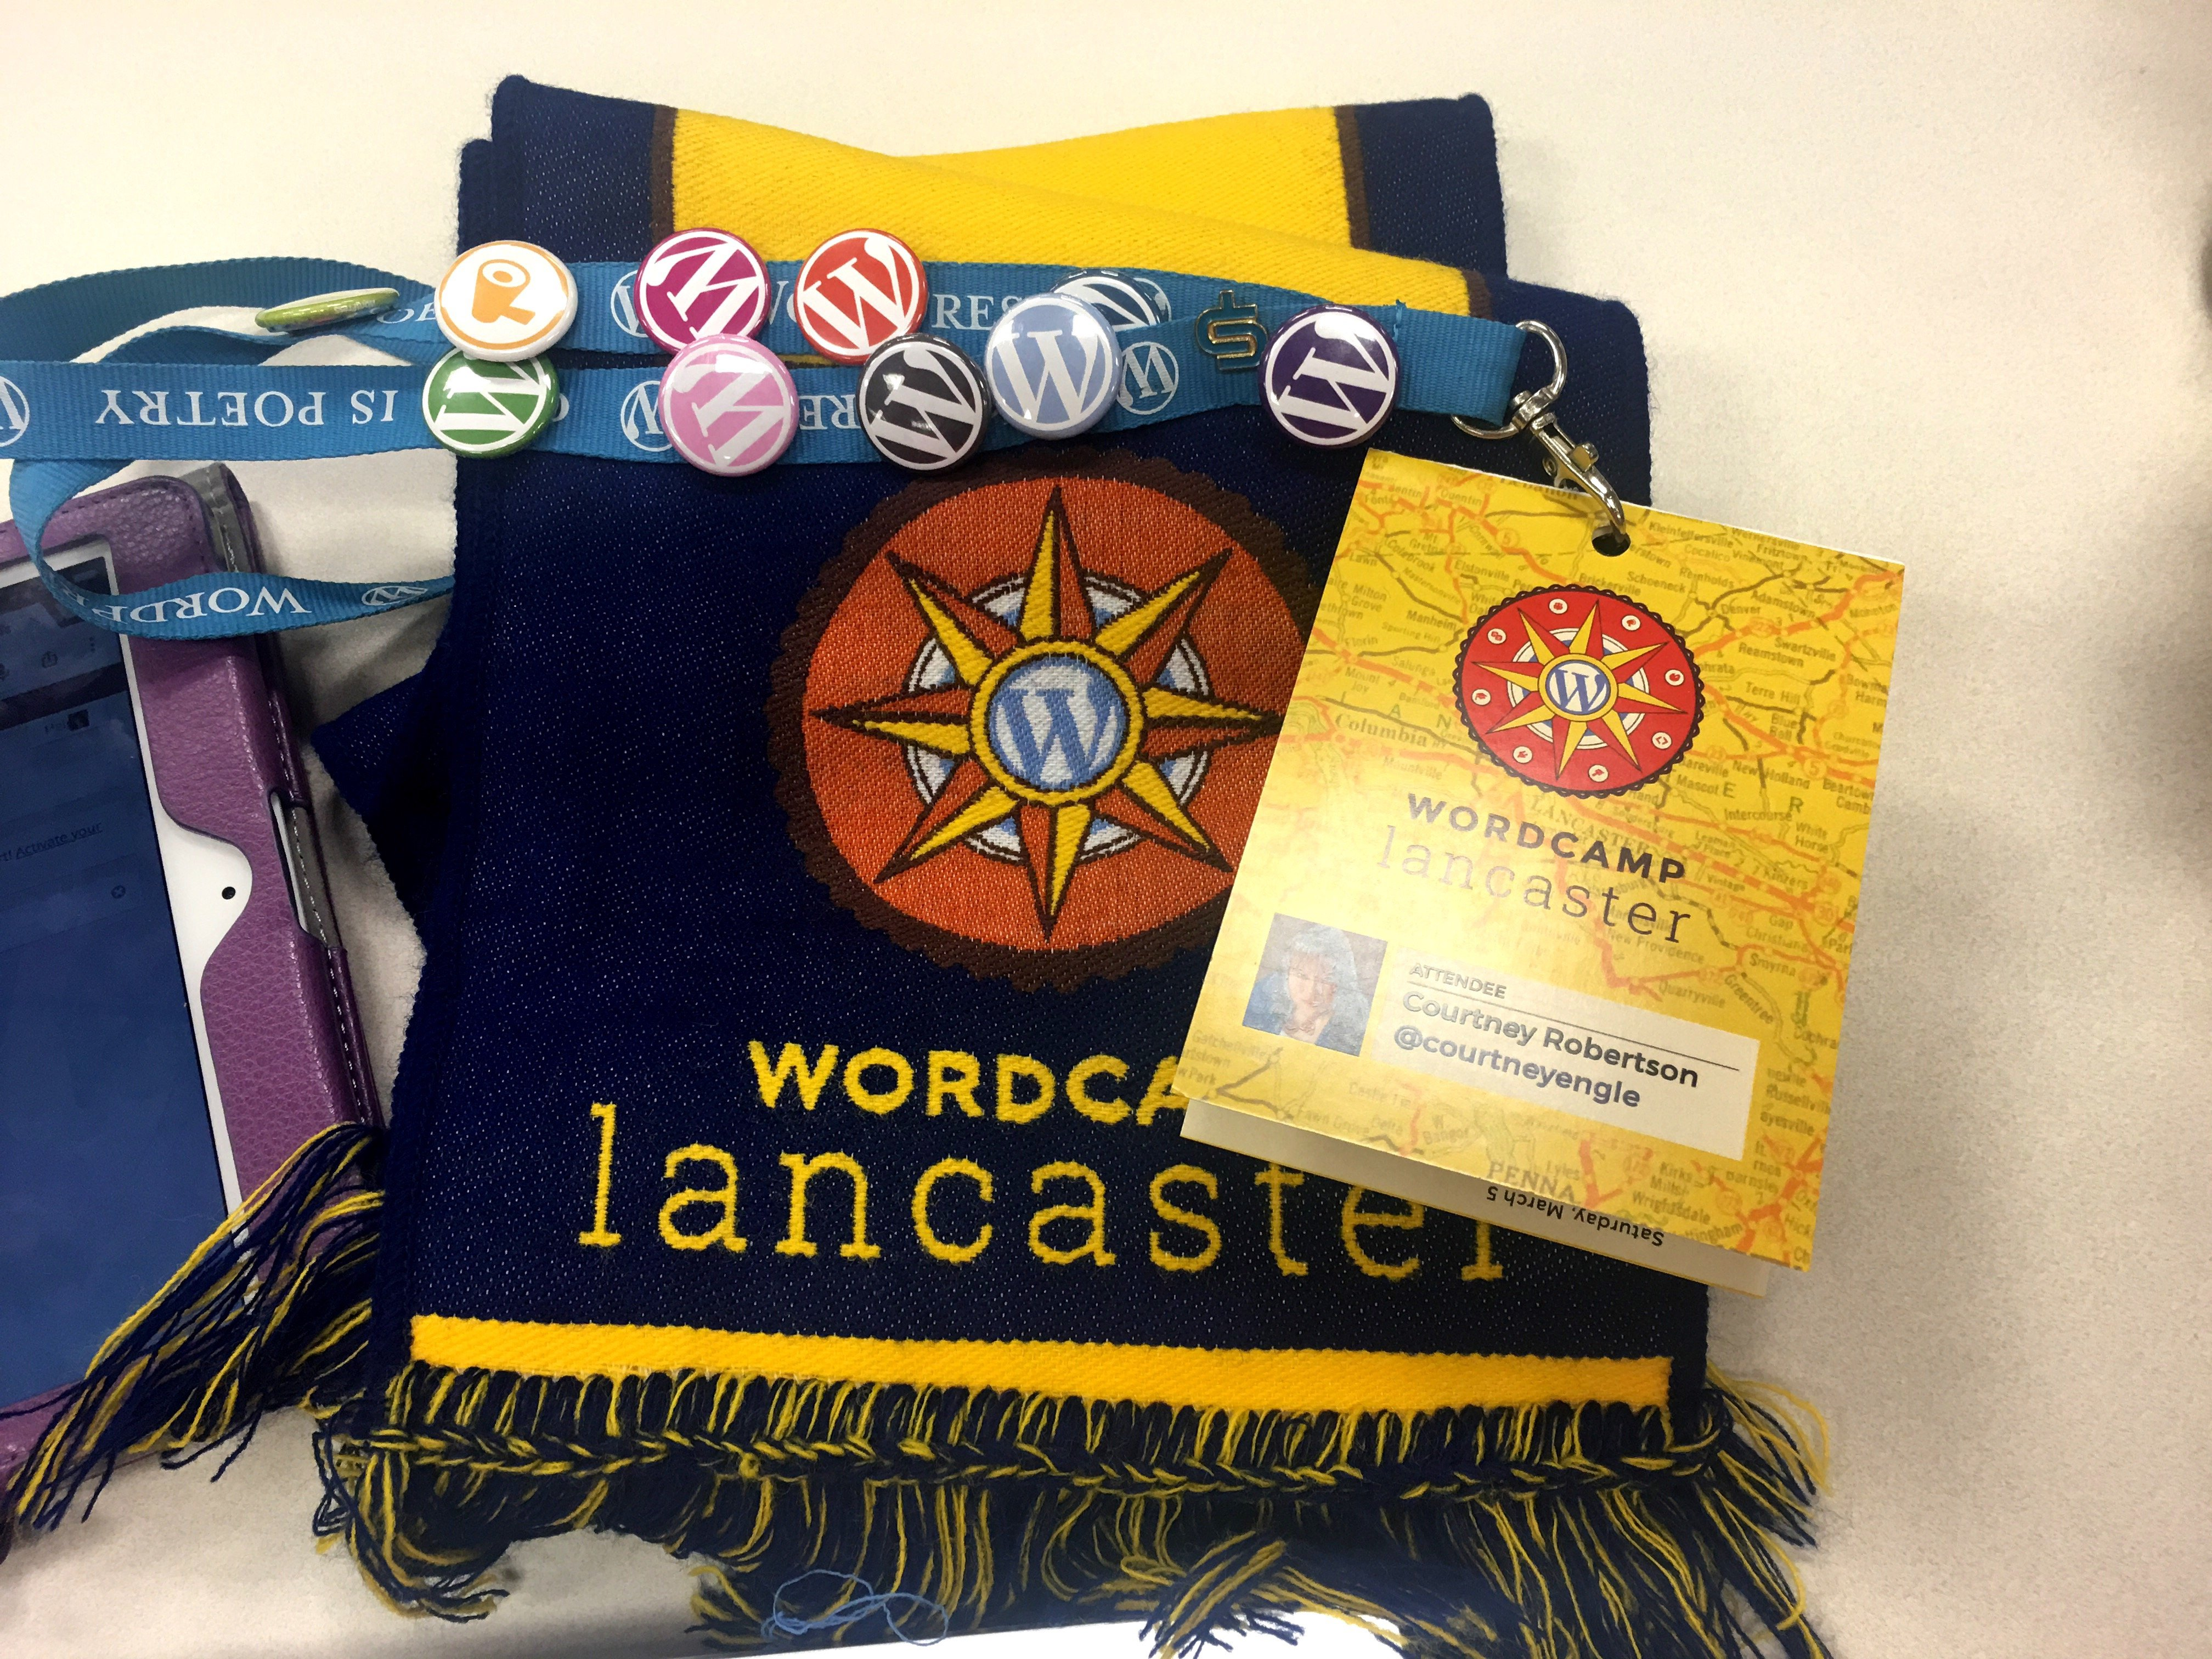 WordCamp Lancaster PA name tag and scarf